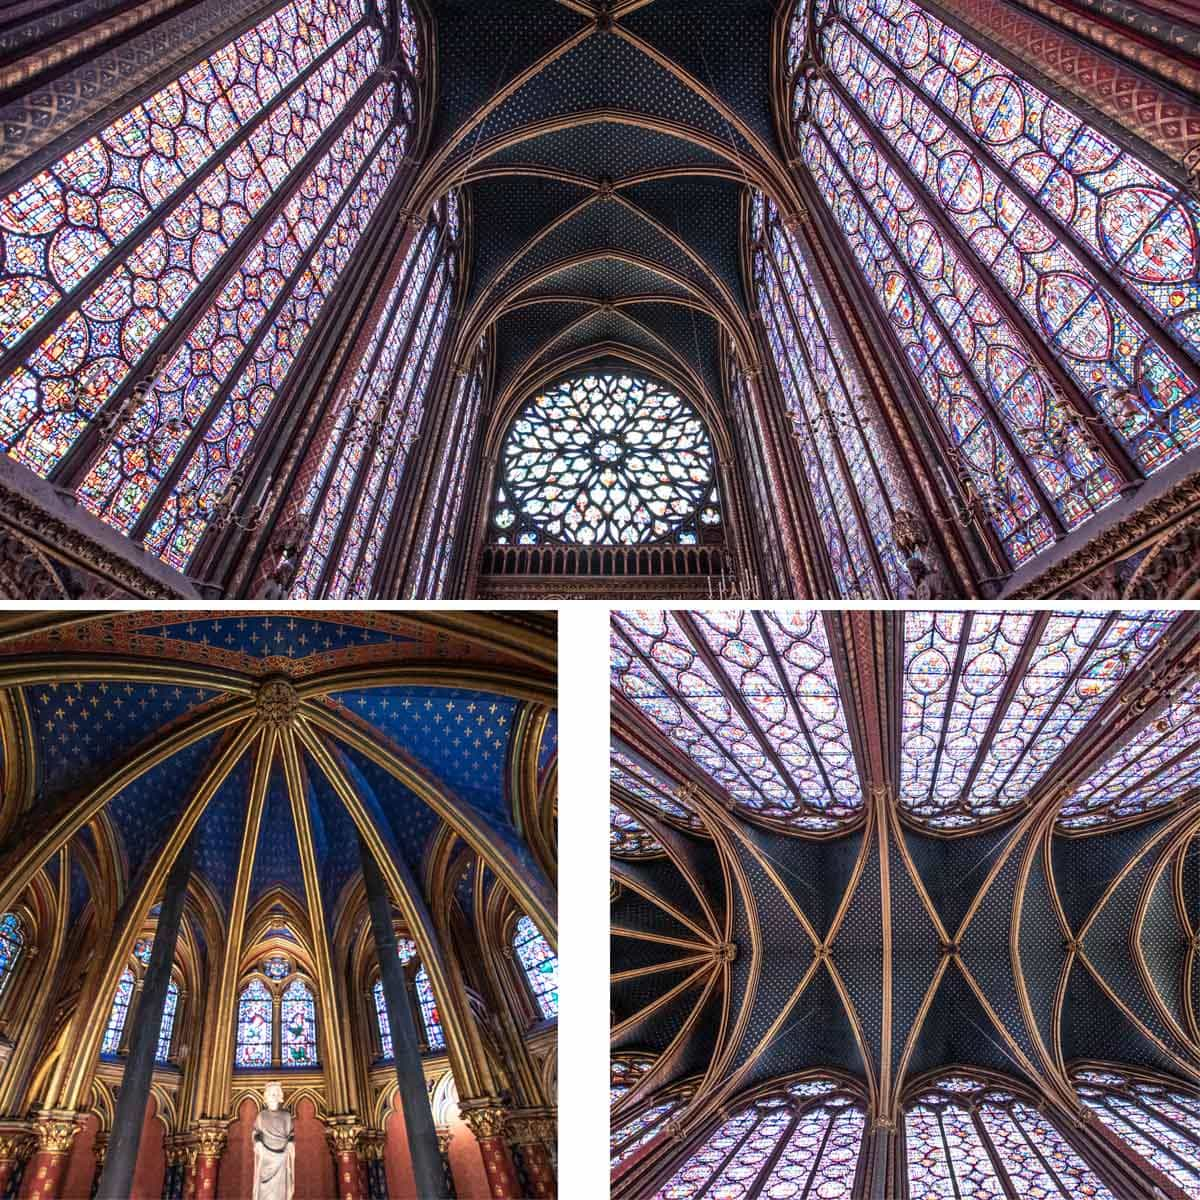 The beautiful windows of Sainte Chapelle